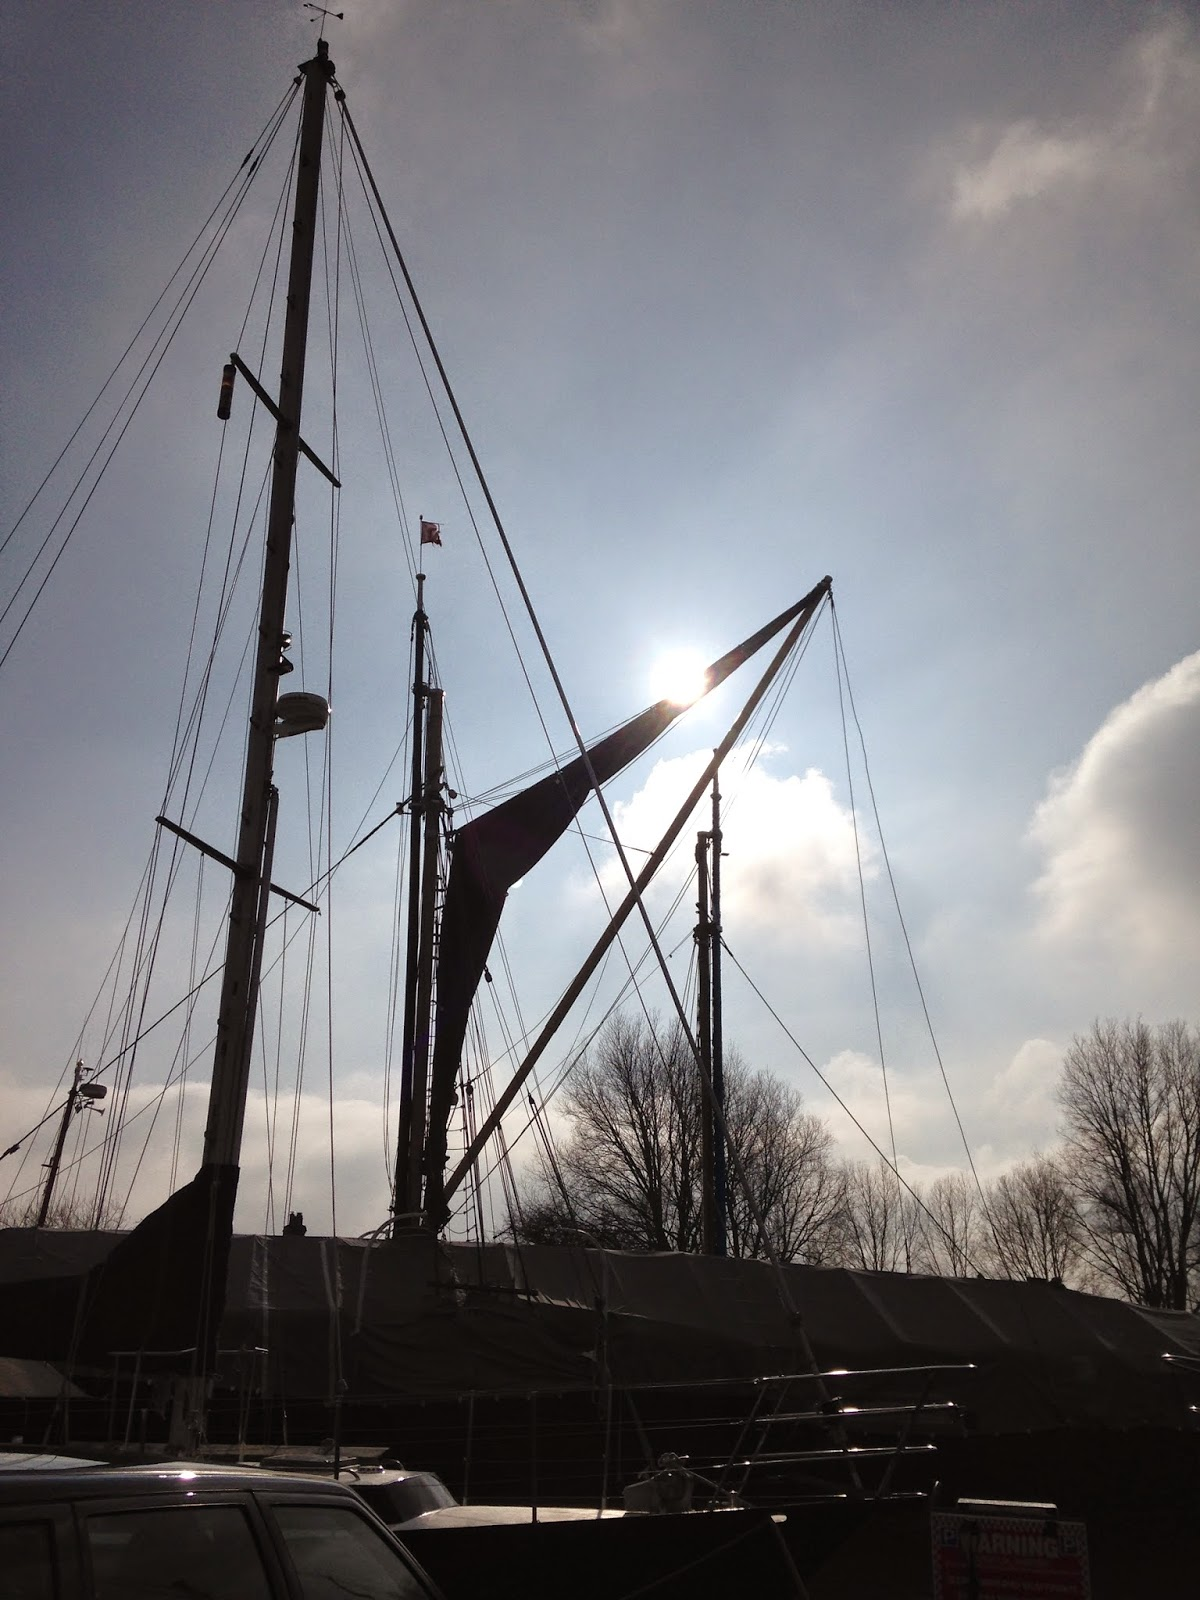 My Monkeys Dont Sit Still February 2015 Parts Of A Tall Ship For Pinterest Email Thisblogthisshare To Twittershare Facebookshare